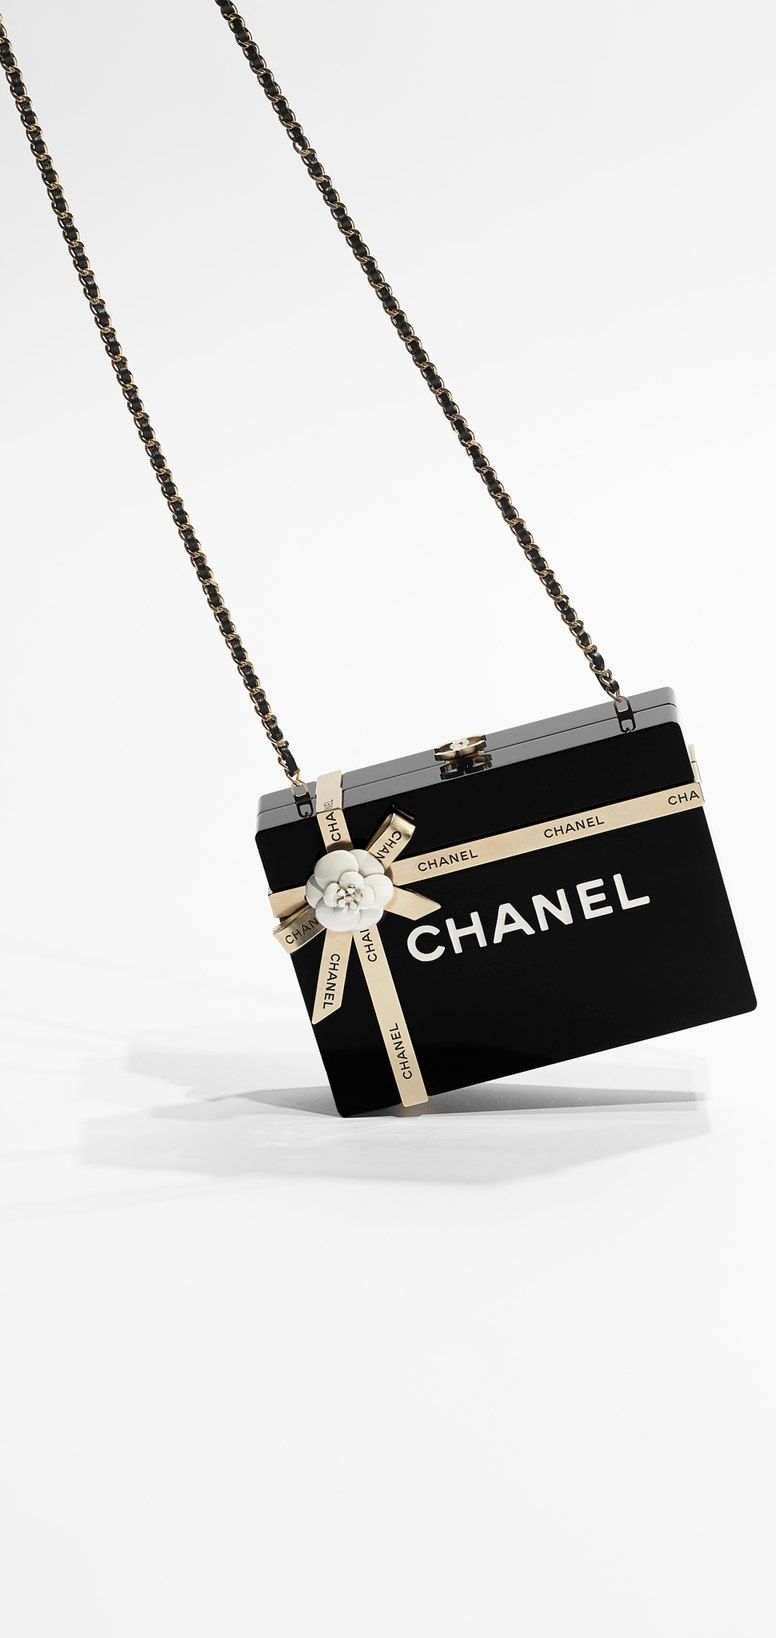 bf0c2cad1d5d8e Chanel bag of dreams, oh my! (It looks like a gift-wrapped Chanel box)